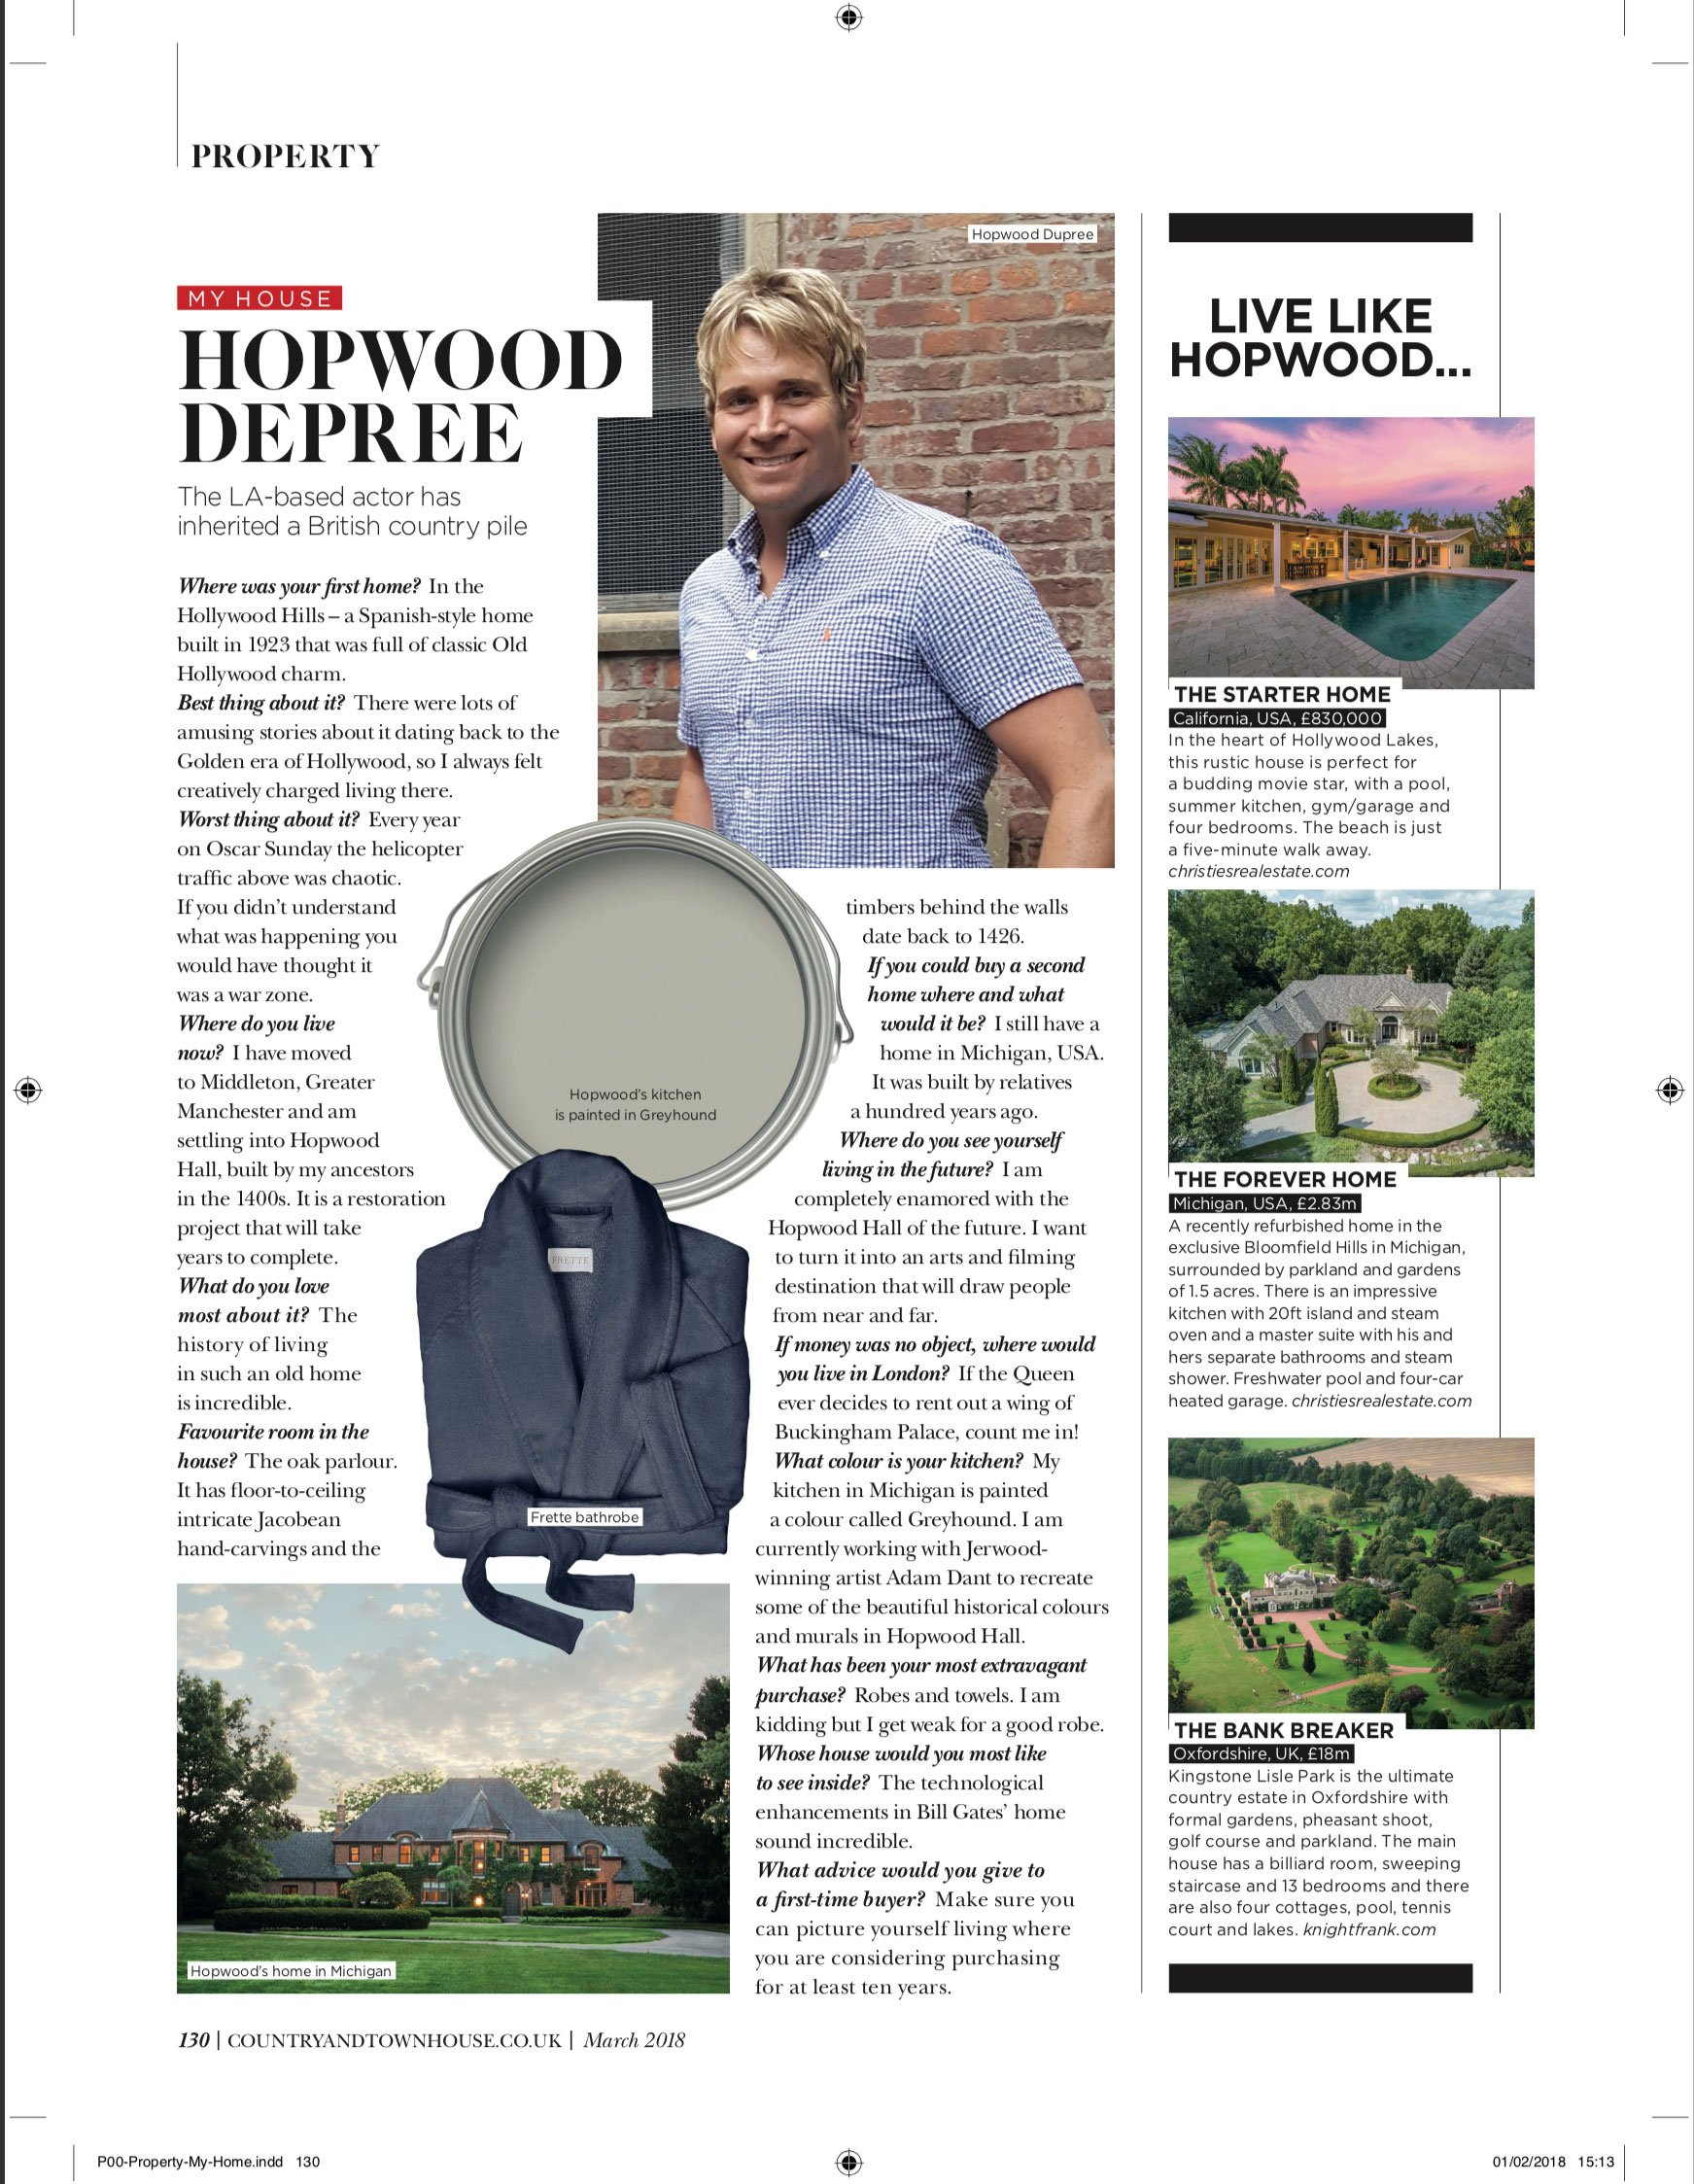 COUNTRY and TOWN HOUSE MAGAZINE: An Interview With Hopwood DePree: Hopwood Hall Rochdale